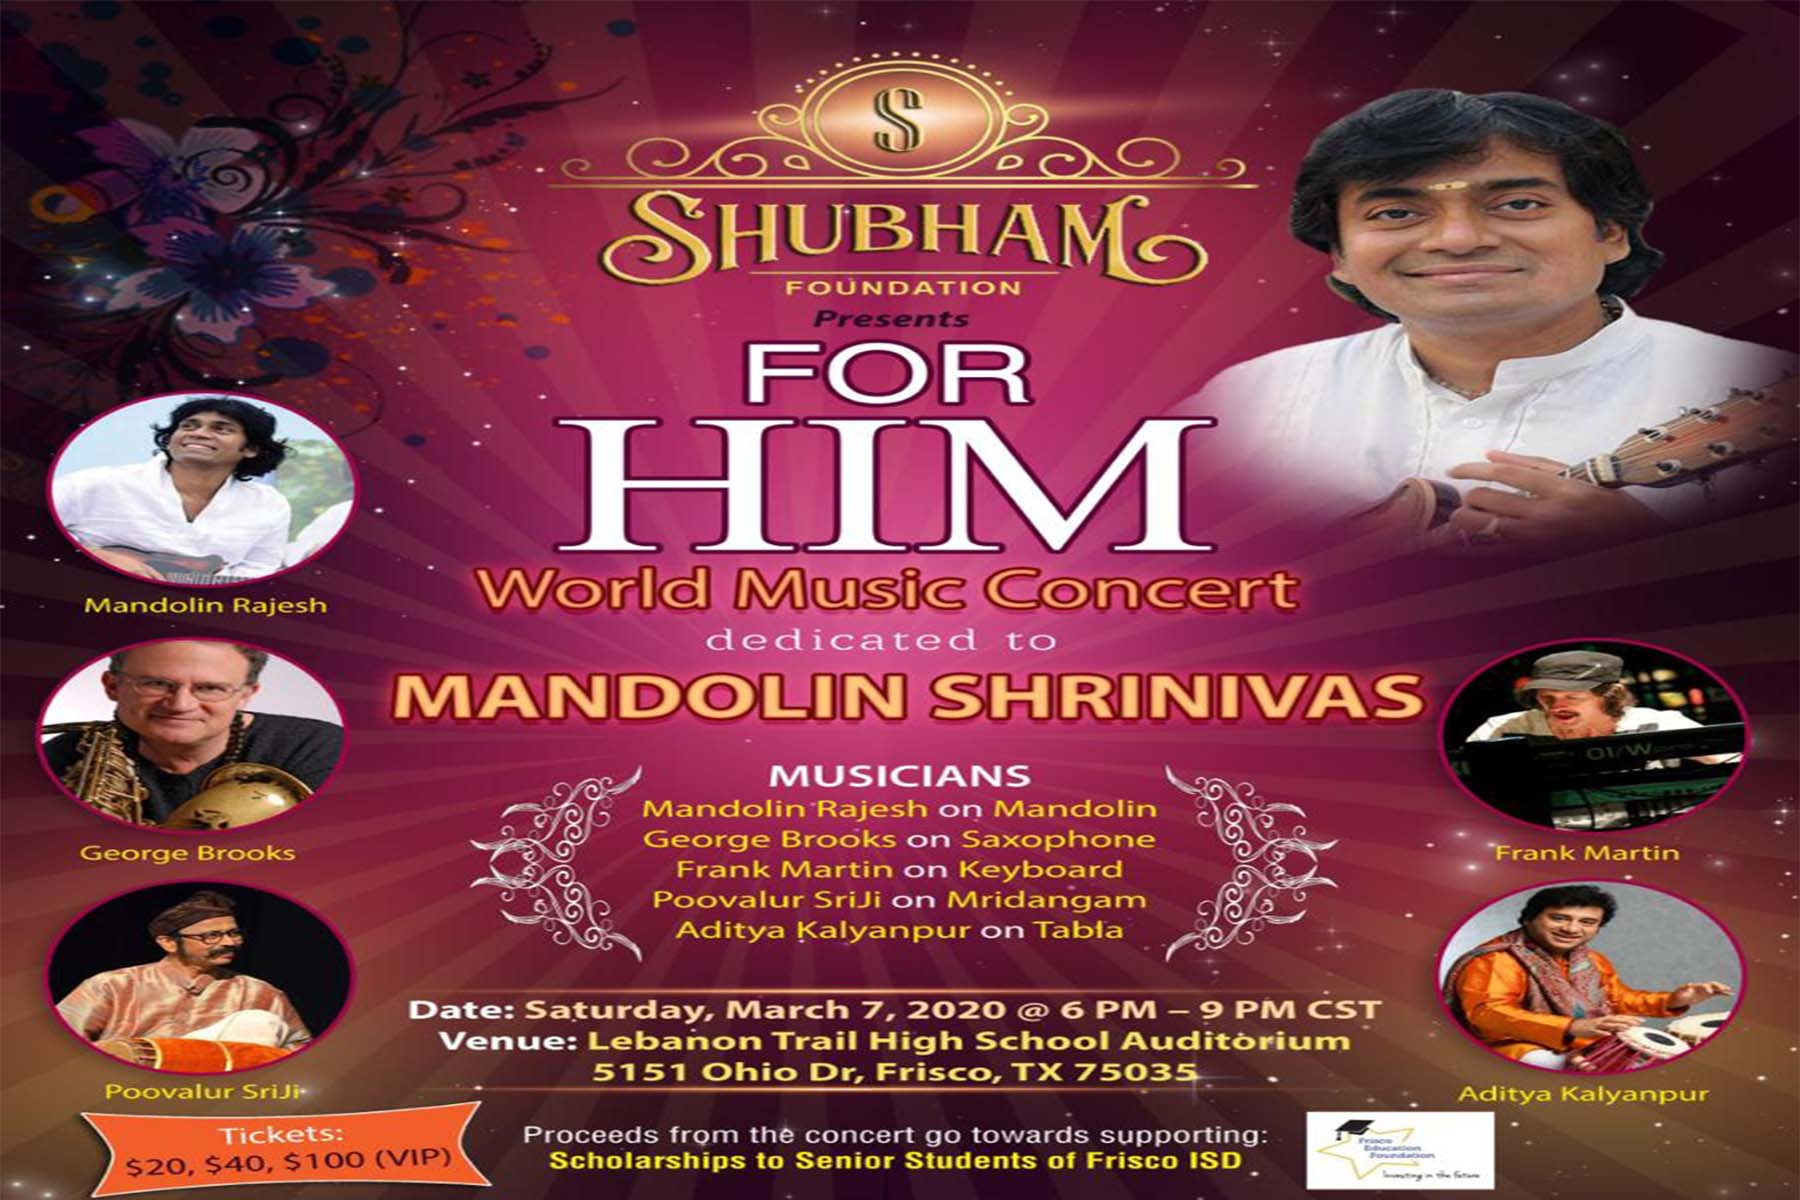 mandolin-u-rajesh-performing-at-dallas-on-7th-march